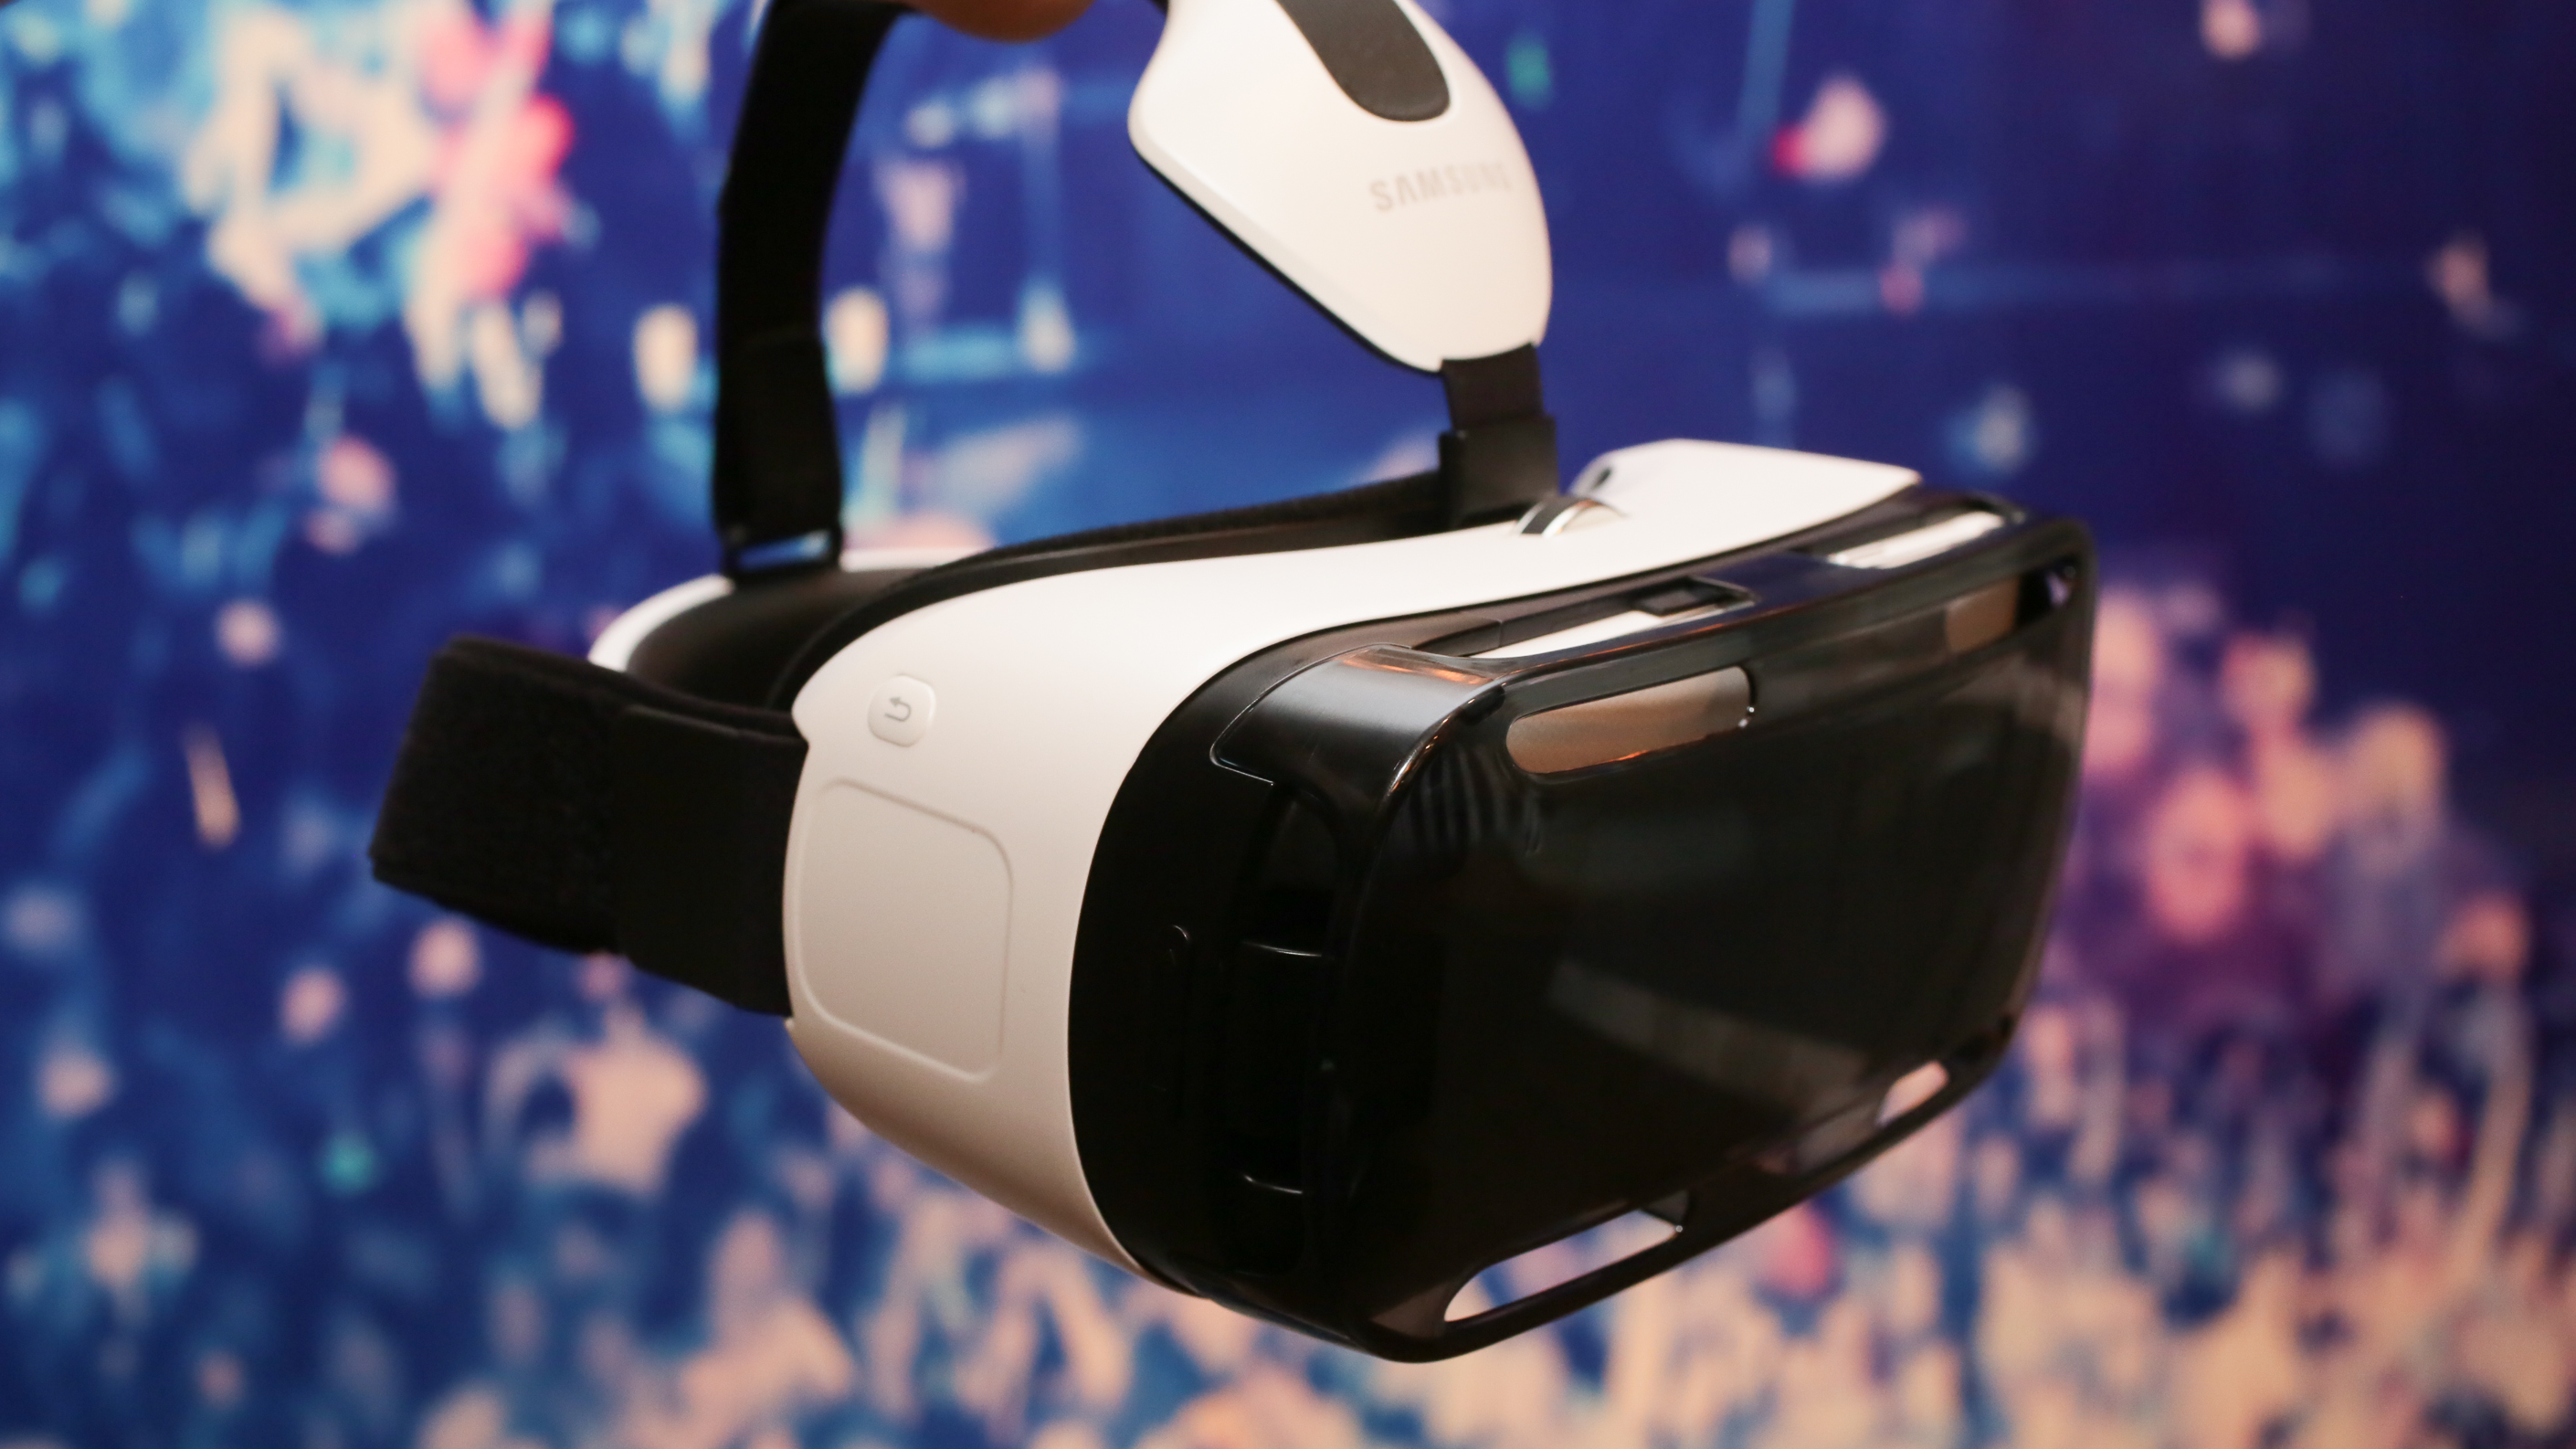 samsung-gear-vr-product-photos17.jpg